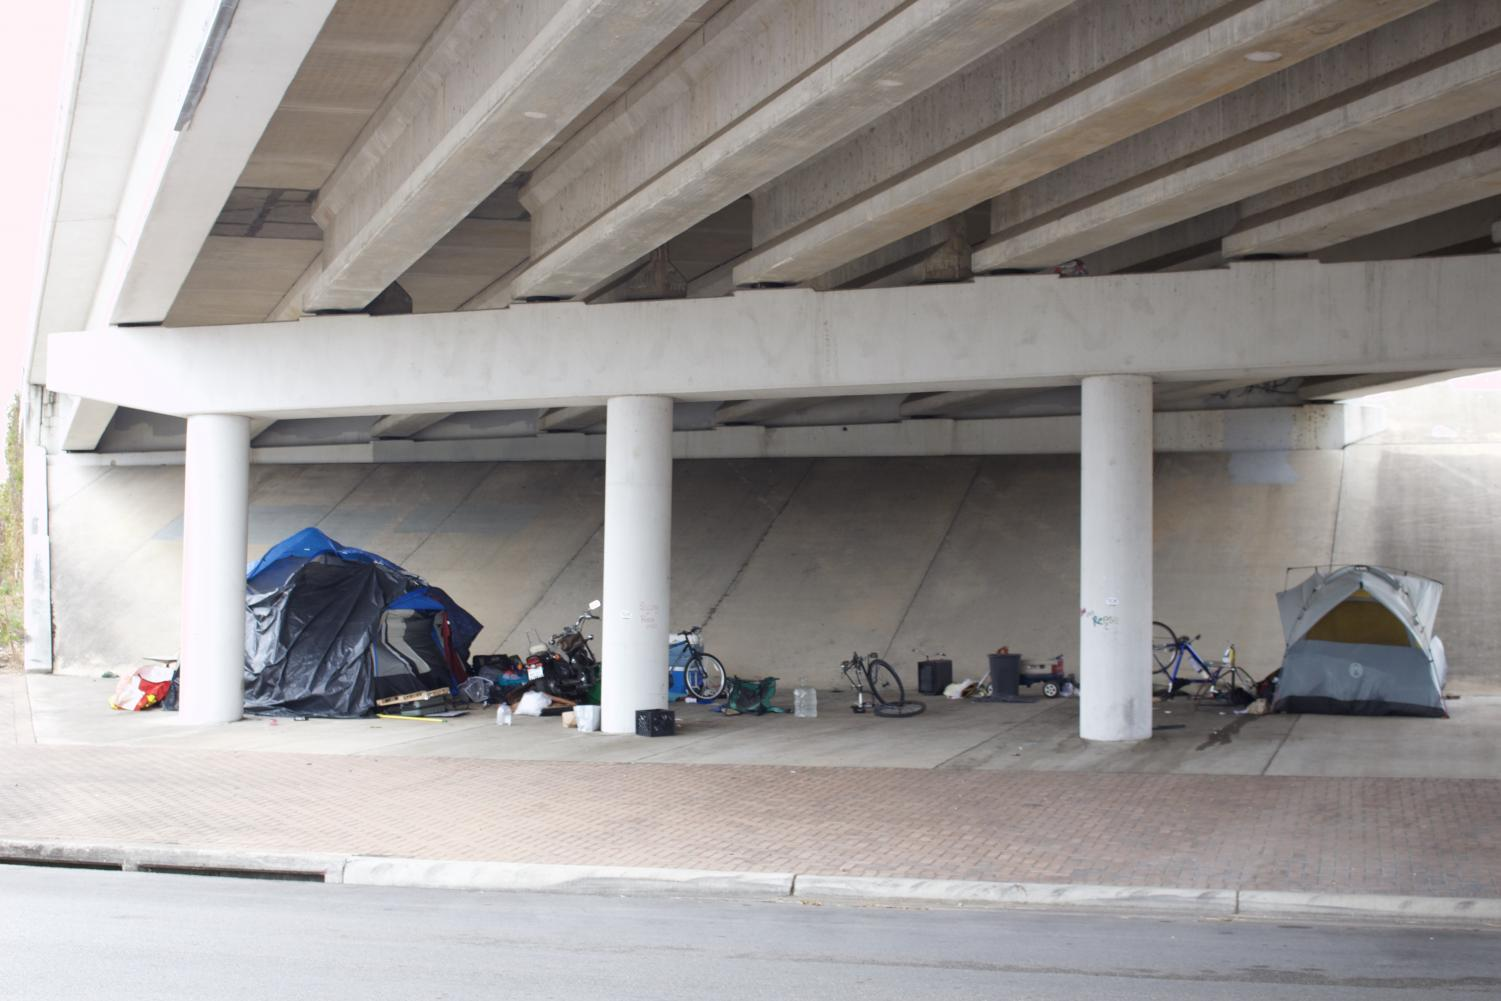 The homeless population has grown from 855,215 to 964,254 from 2013 to 2018 according to the U.S Census Bureau. That's a 12.4 percent increase.